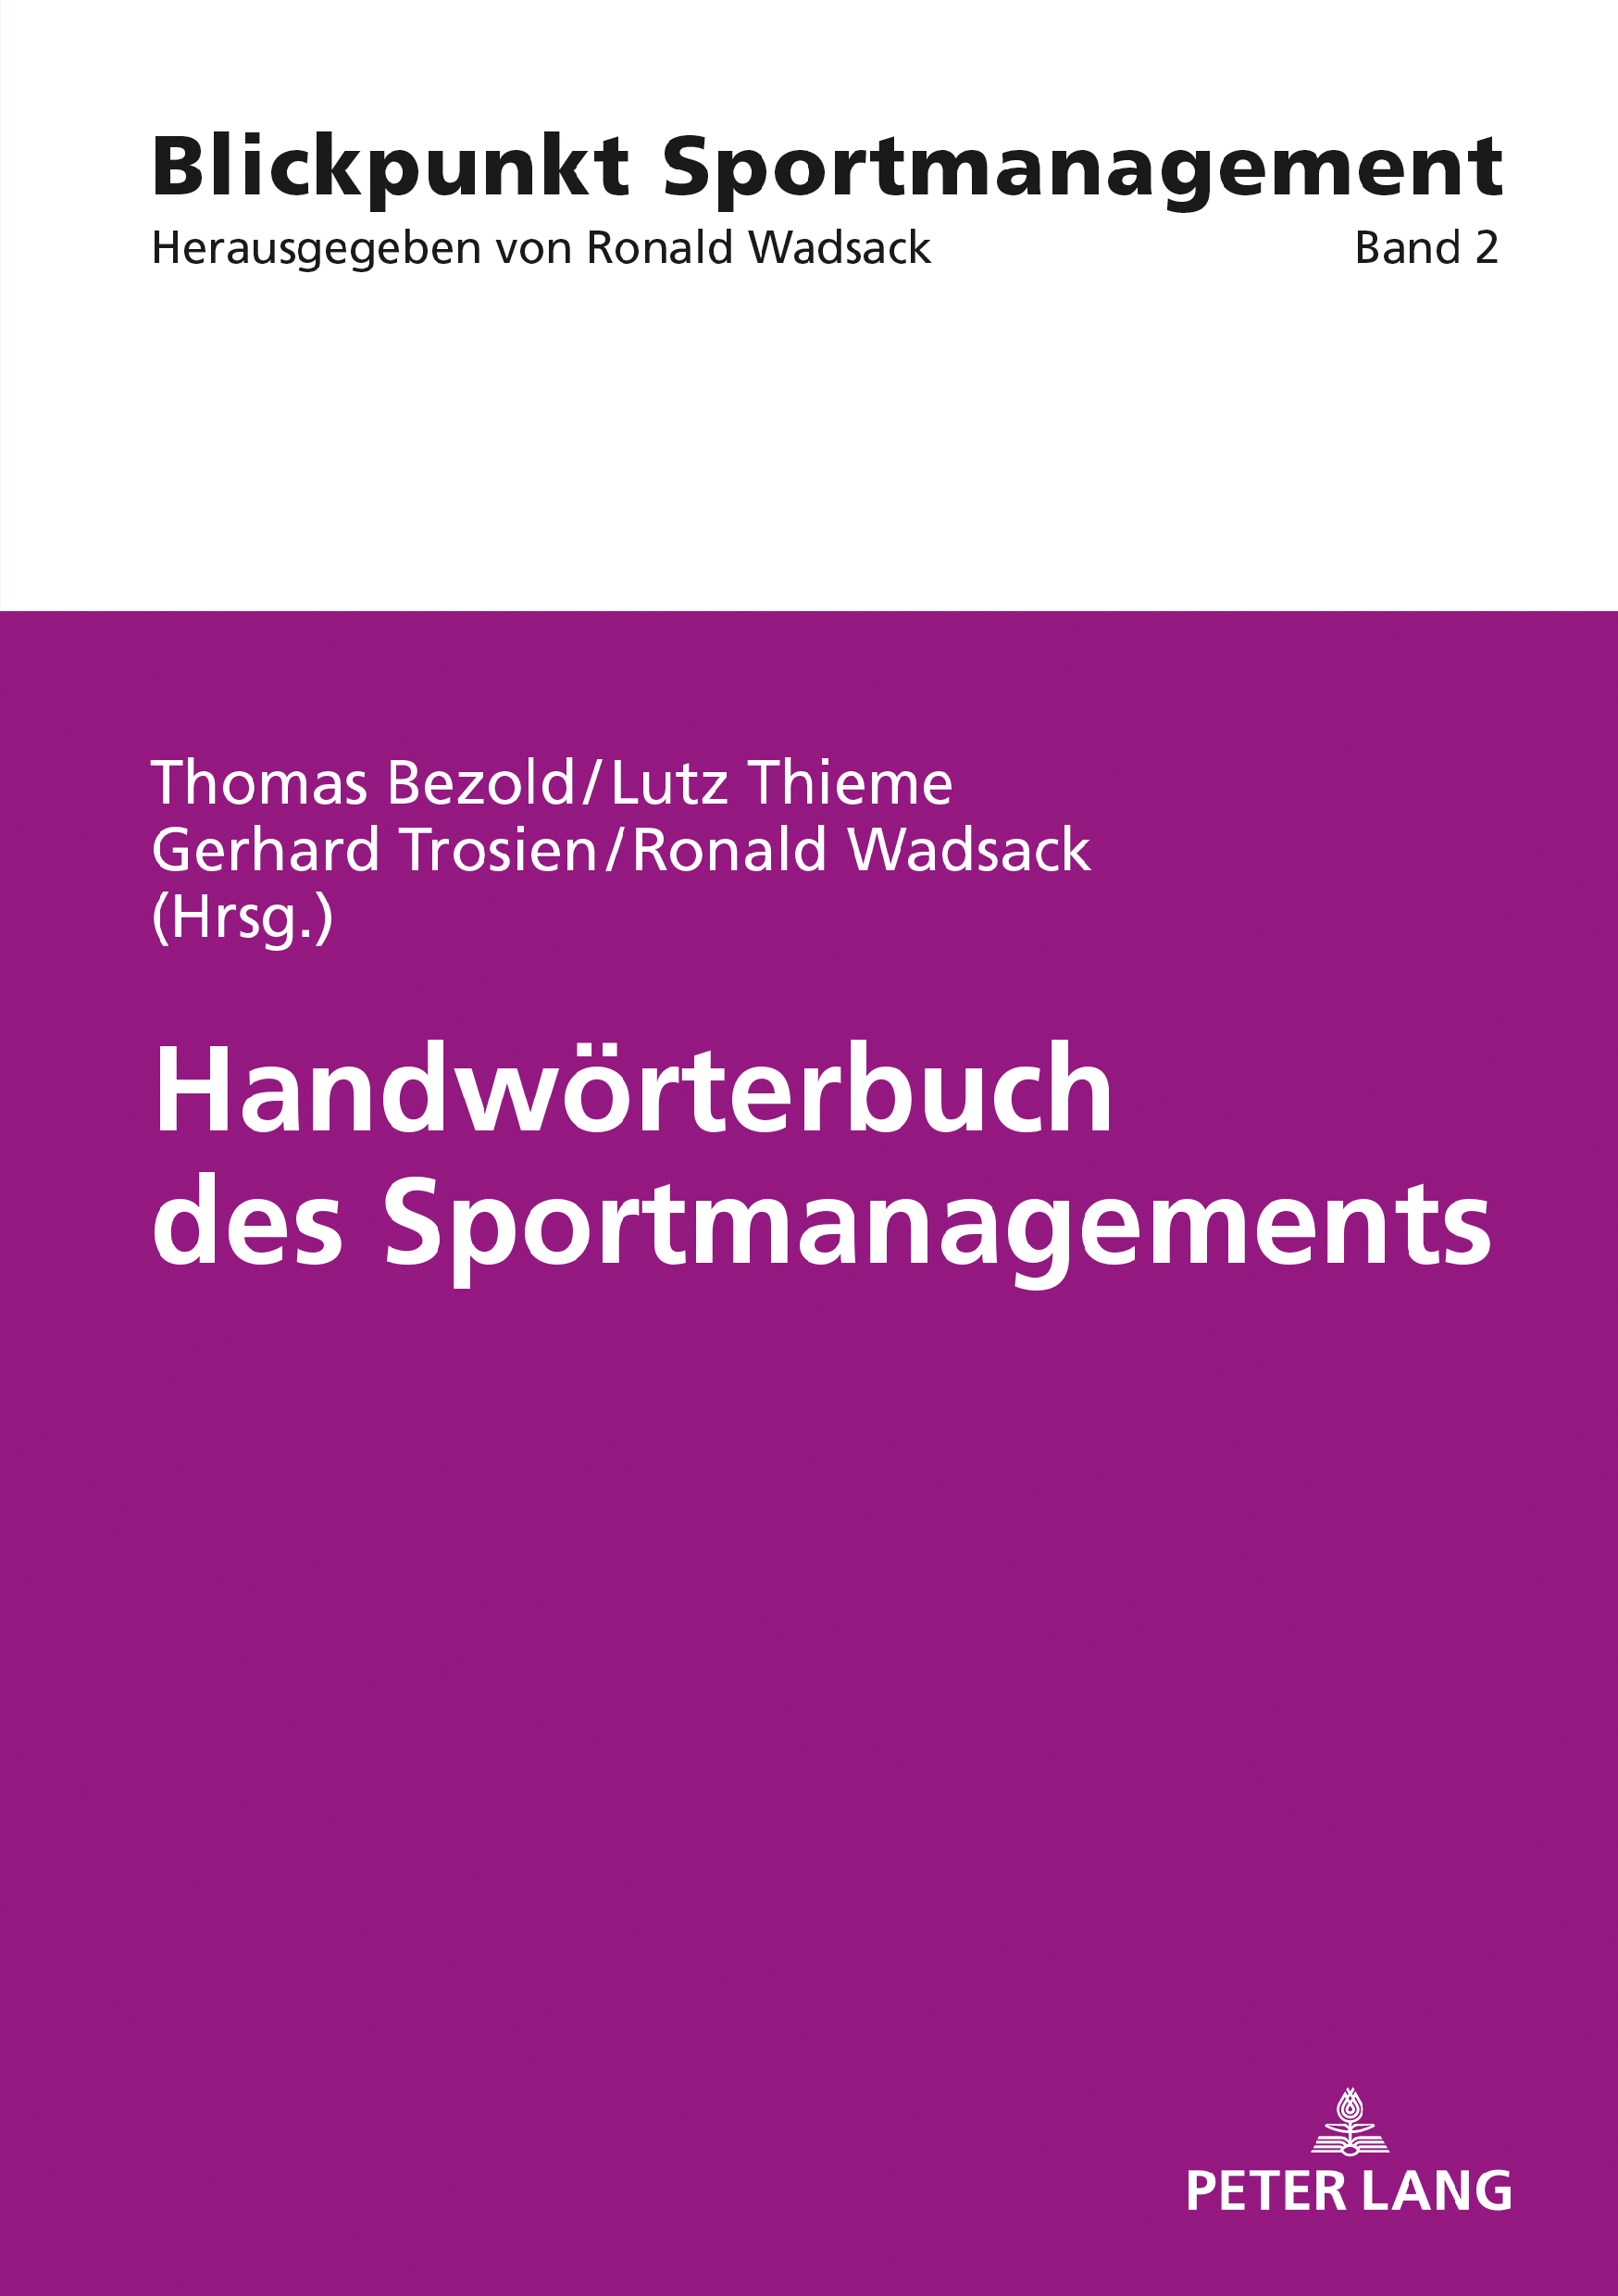 Handwörterbuch des Sportmanagements - Edited By Thomas Bezold, Lutz Thieme, Gerhard Trosien and Ronald Wadsack